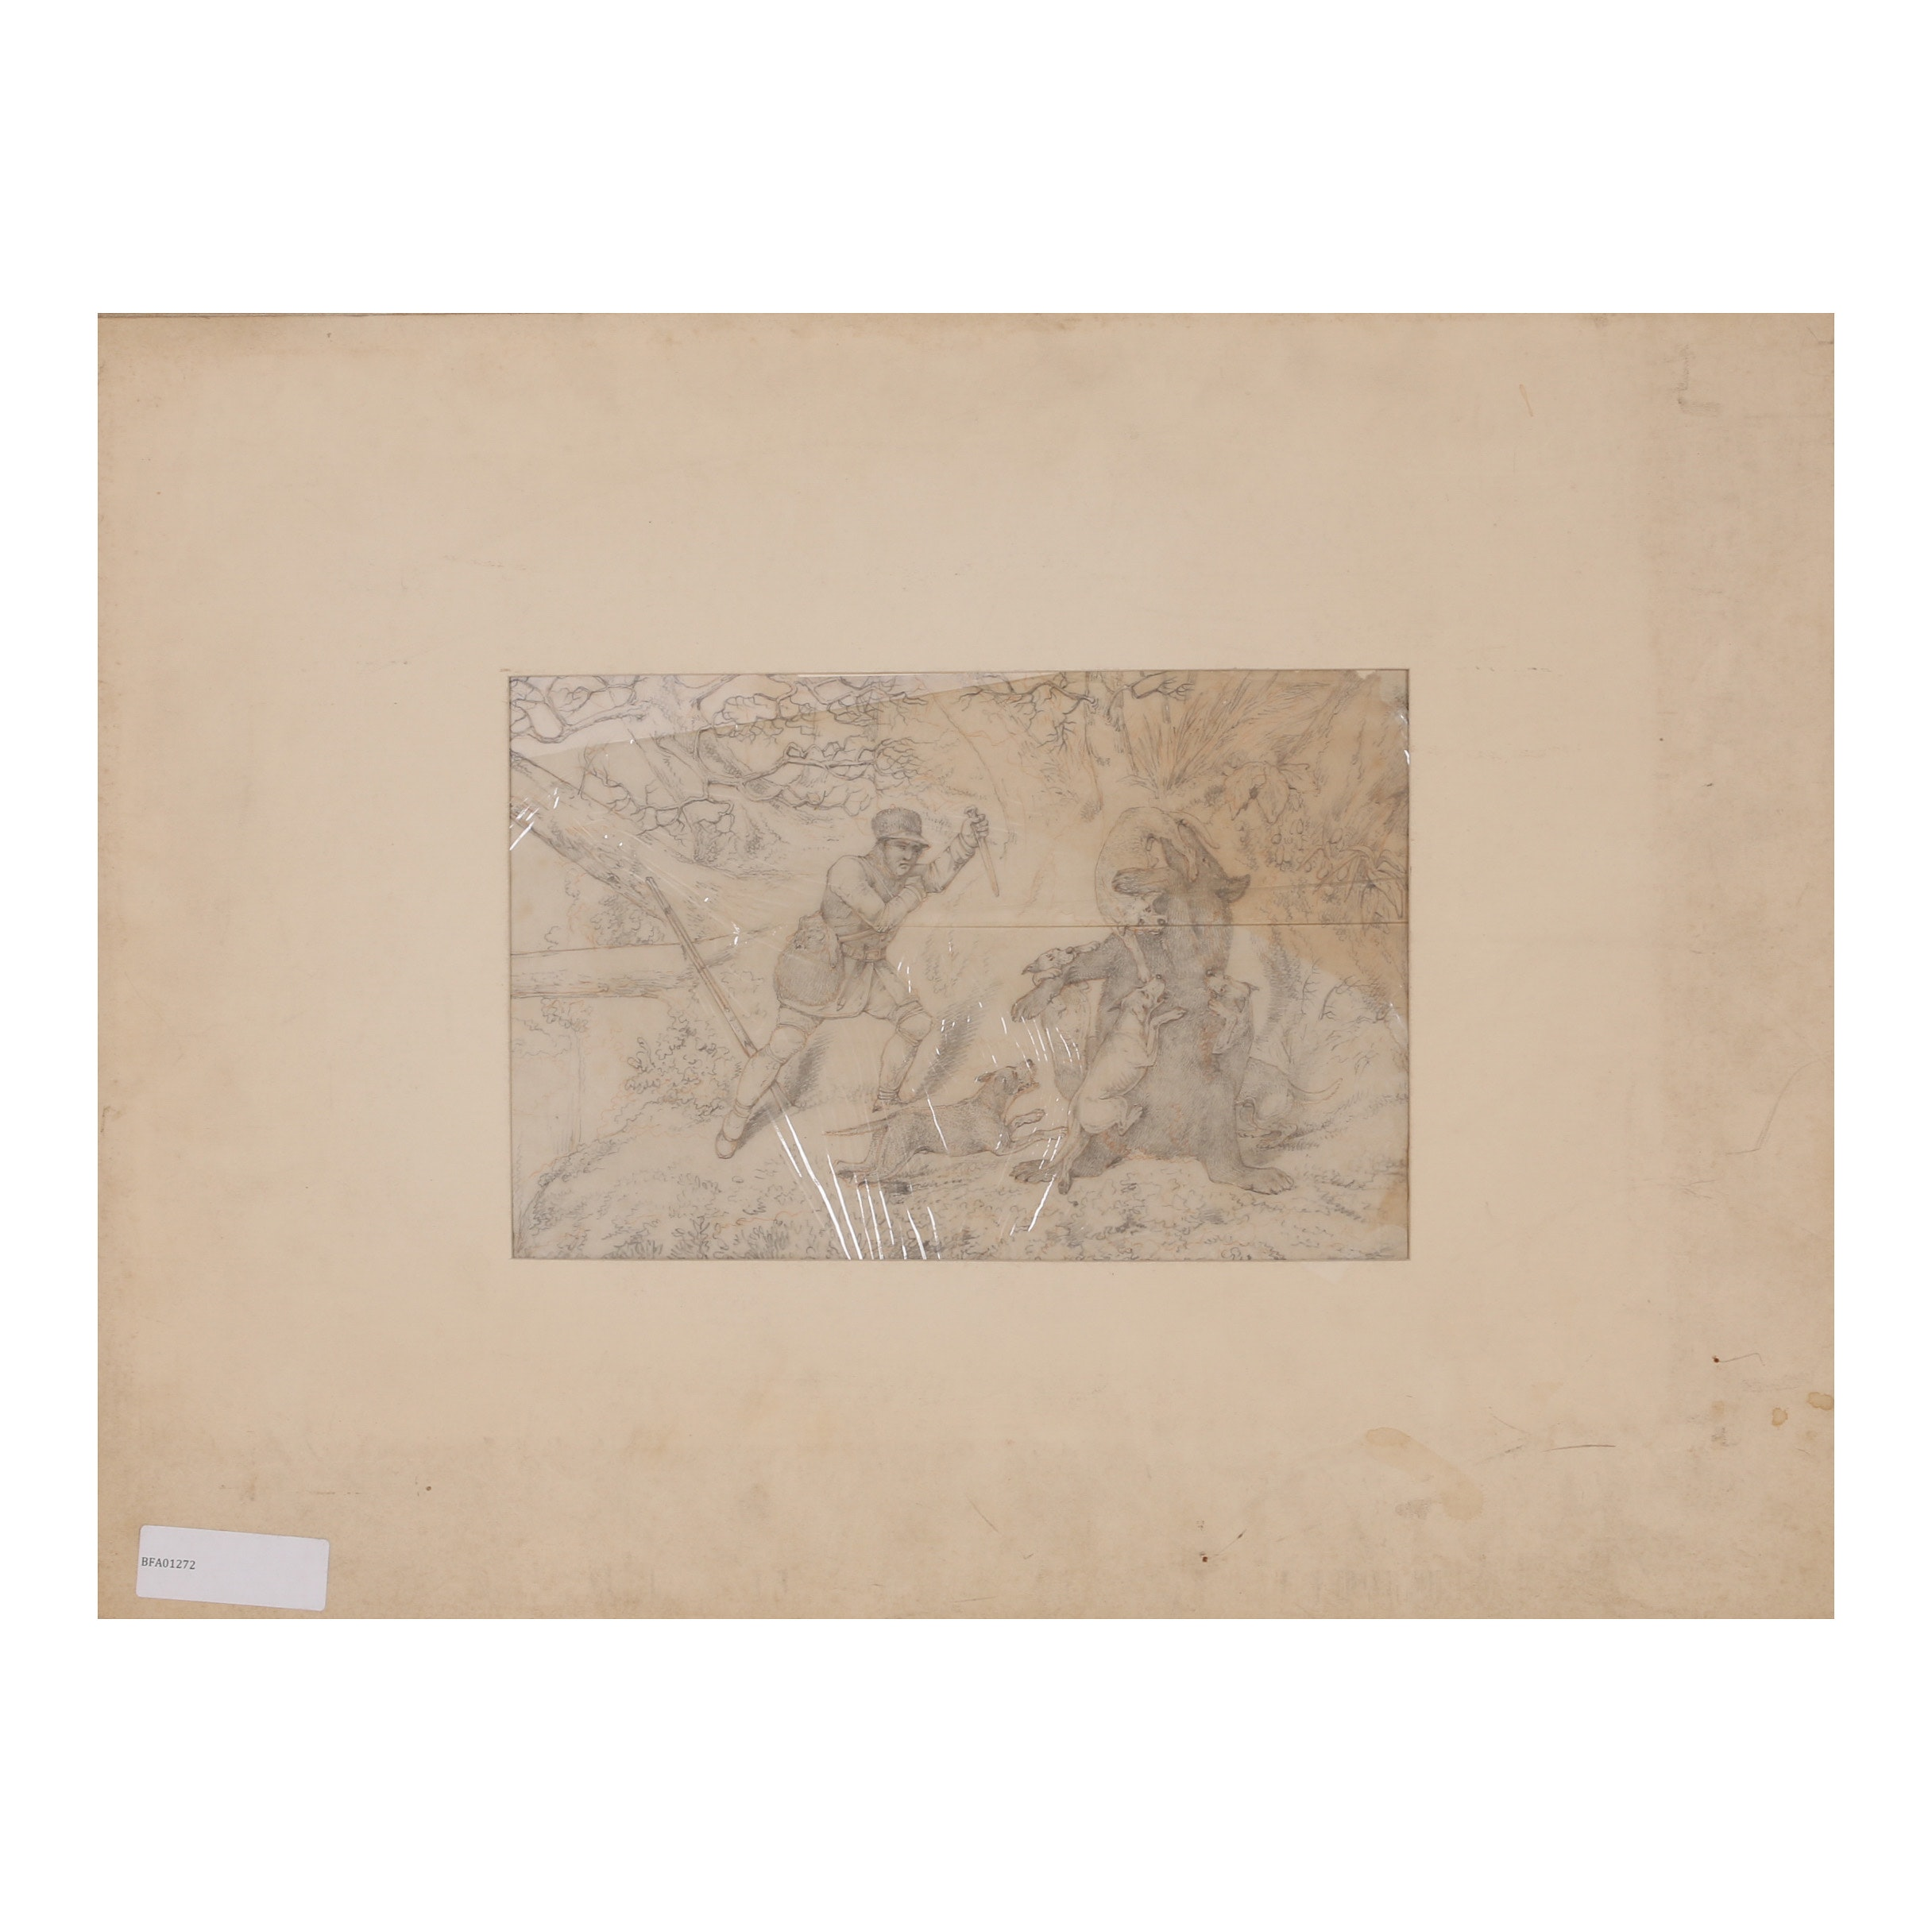 Henry Alken Graphite Drawing and Hand-Colored Etching with Aquatint